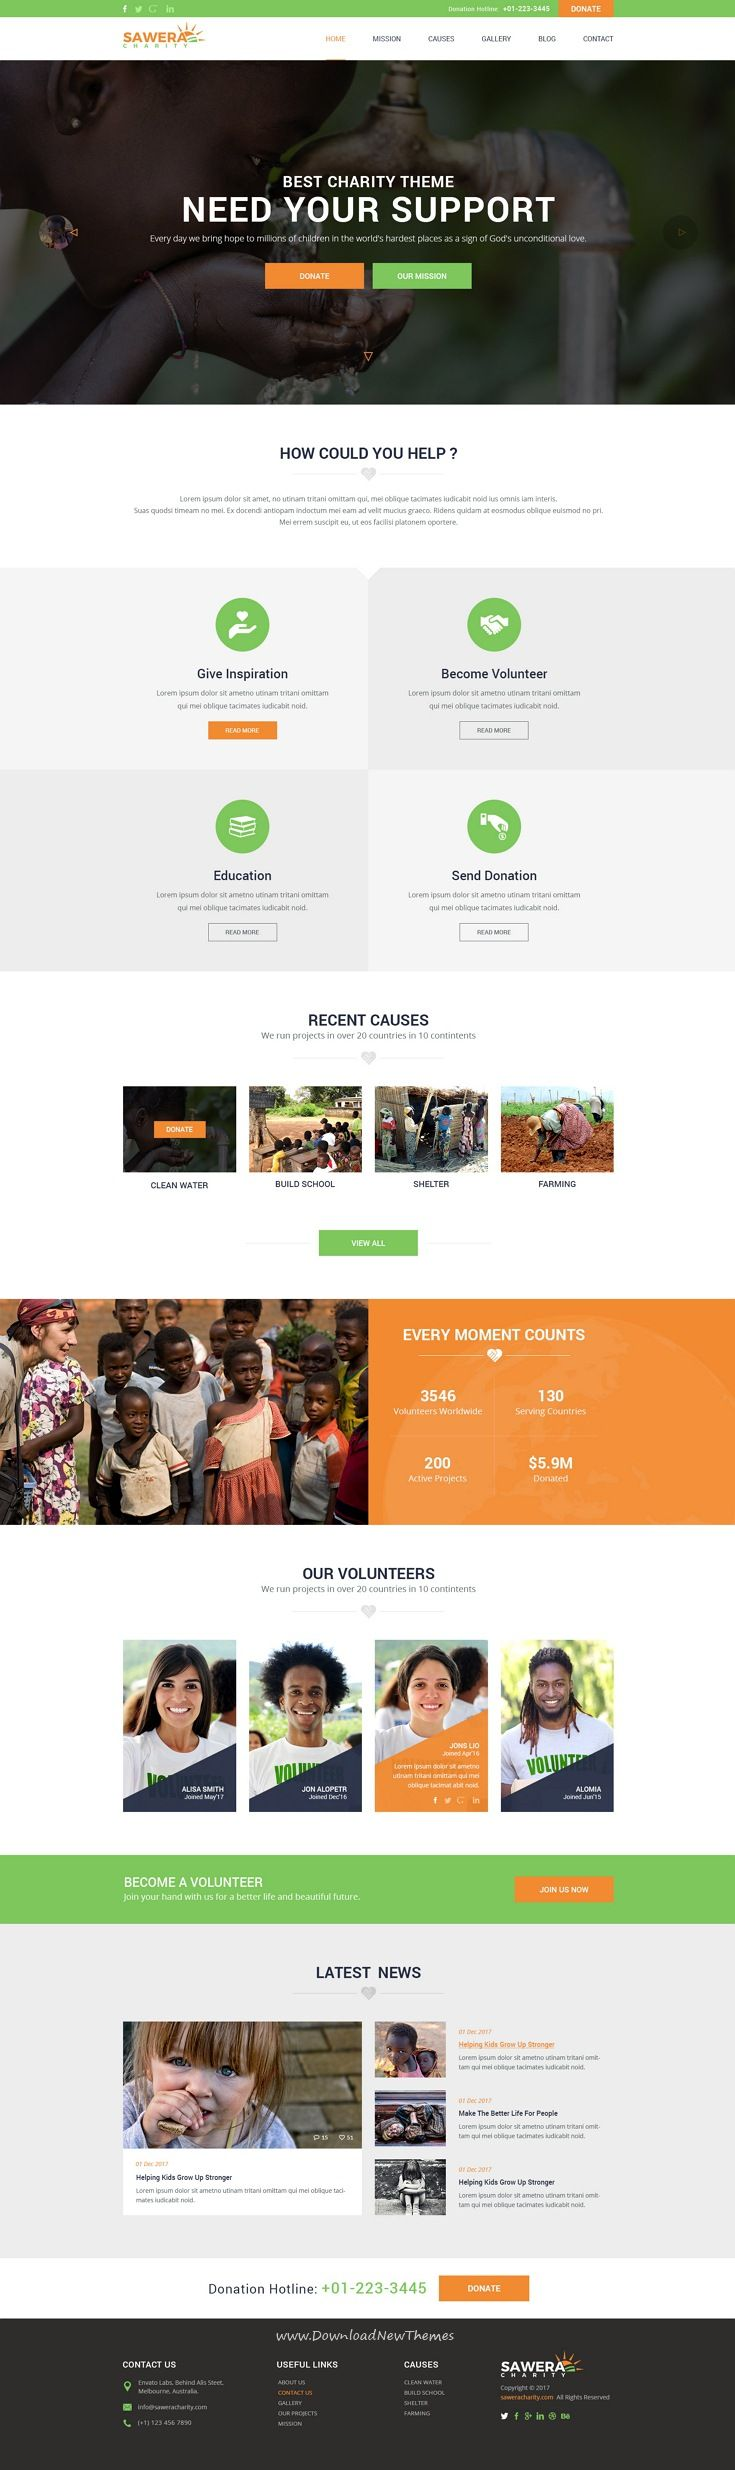 Sawera is clean and modern design #PSD template for #Charity and nonprofit organizations website with 8 layered PSD pages to live preview & download click on Visit  #charityambassador